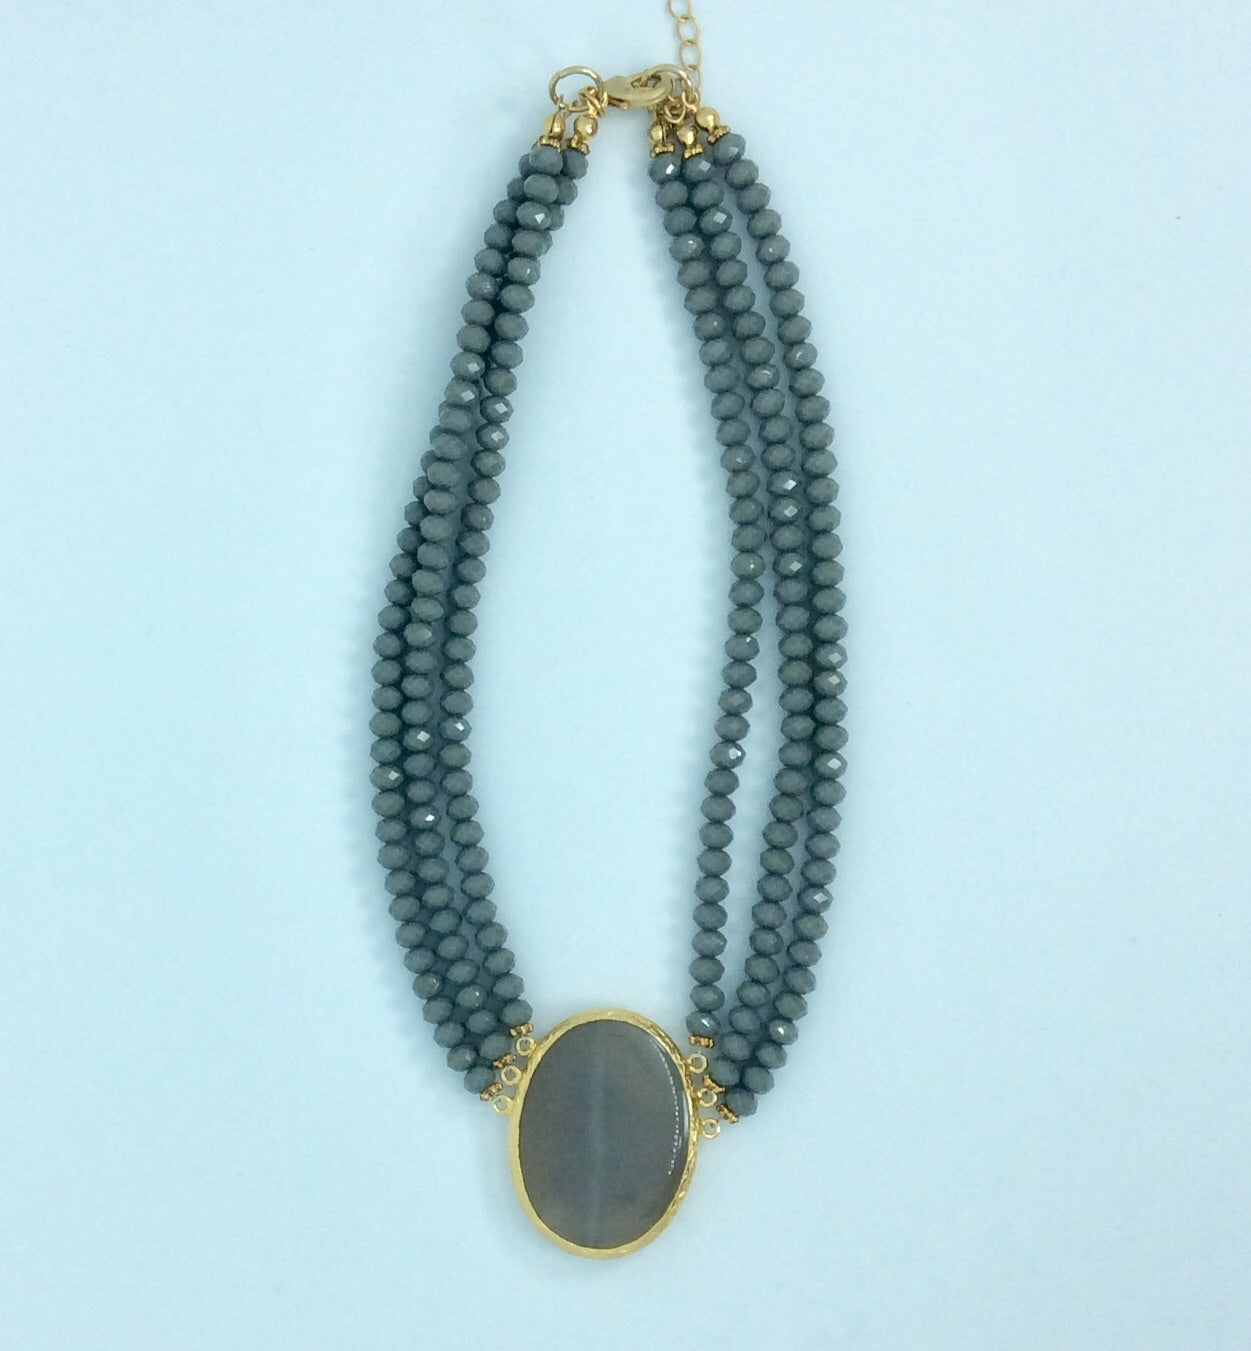 Elegant grey stone and crystal necklace set in gold plate